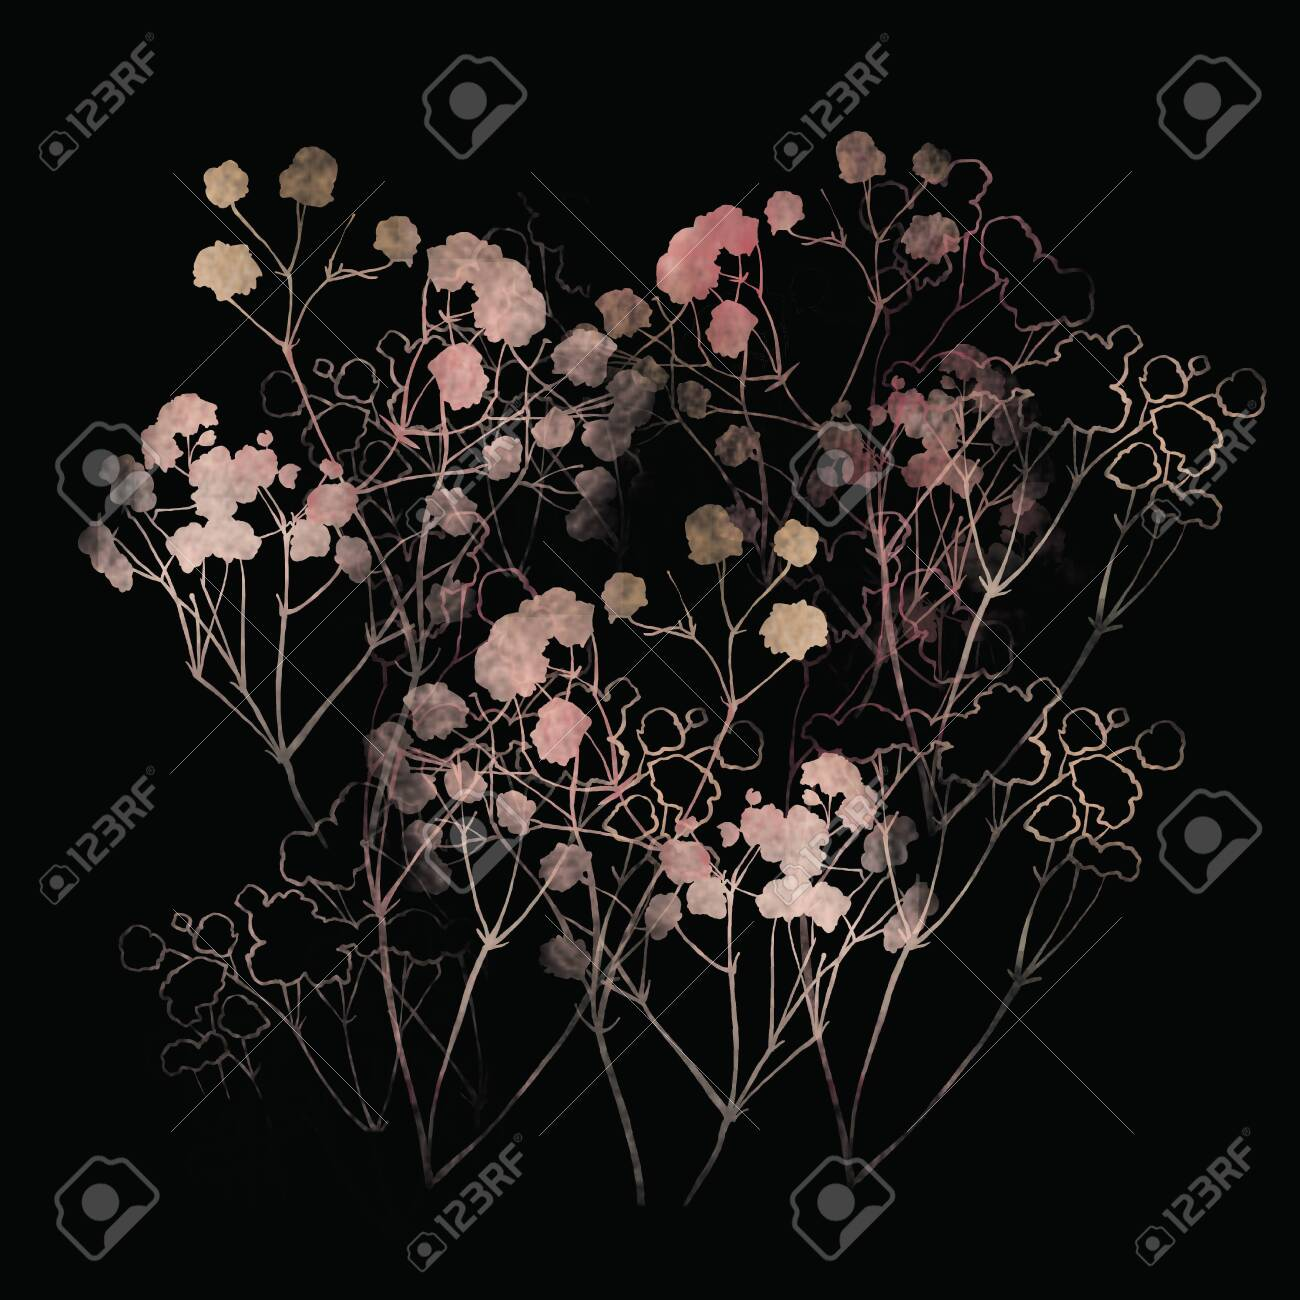 Floral pattern, pink small flowers brunshes. on white gray and black background. Hand drawn illustration, texture pattern. - 132731750